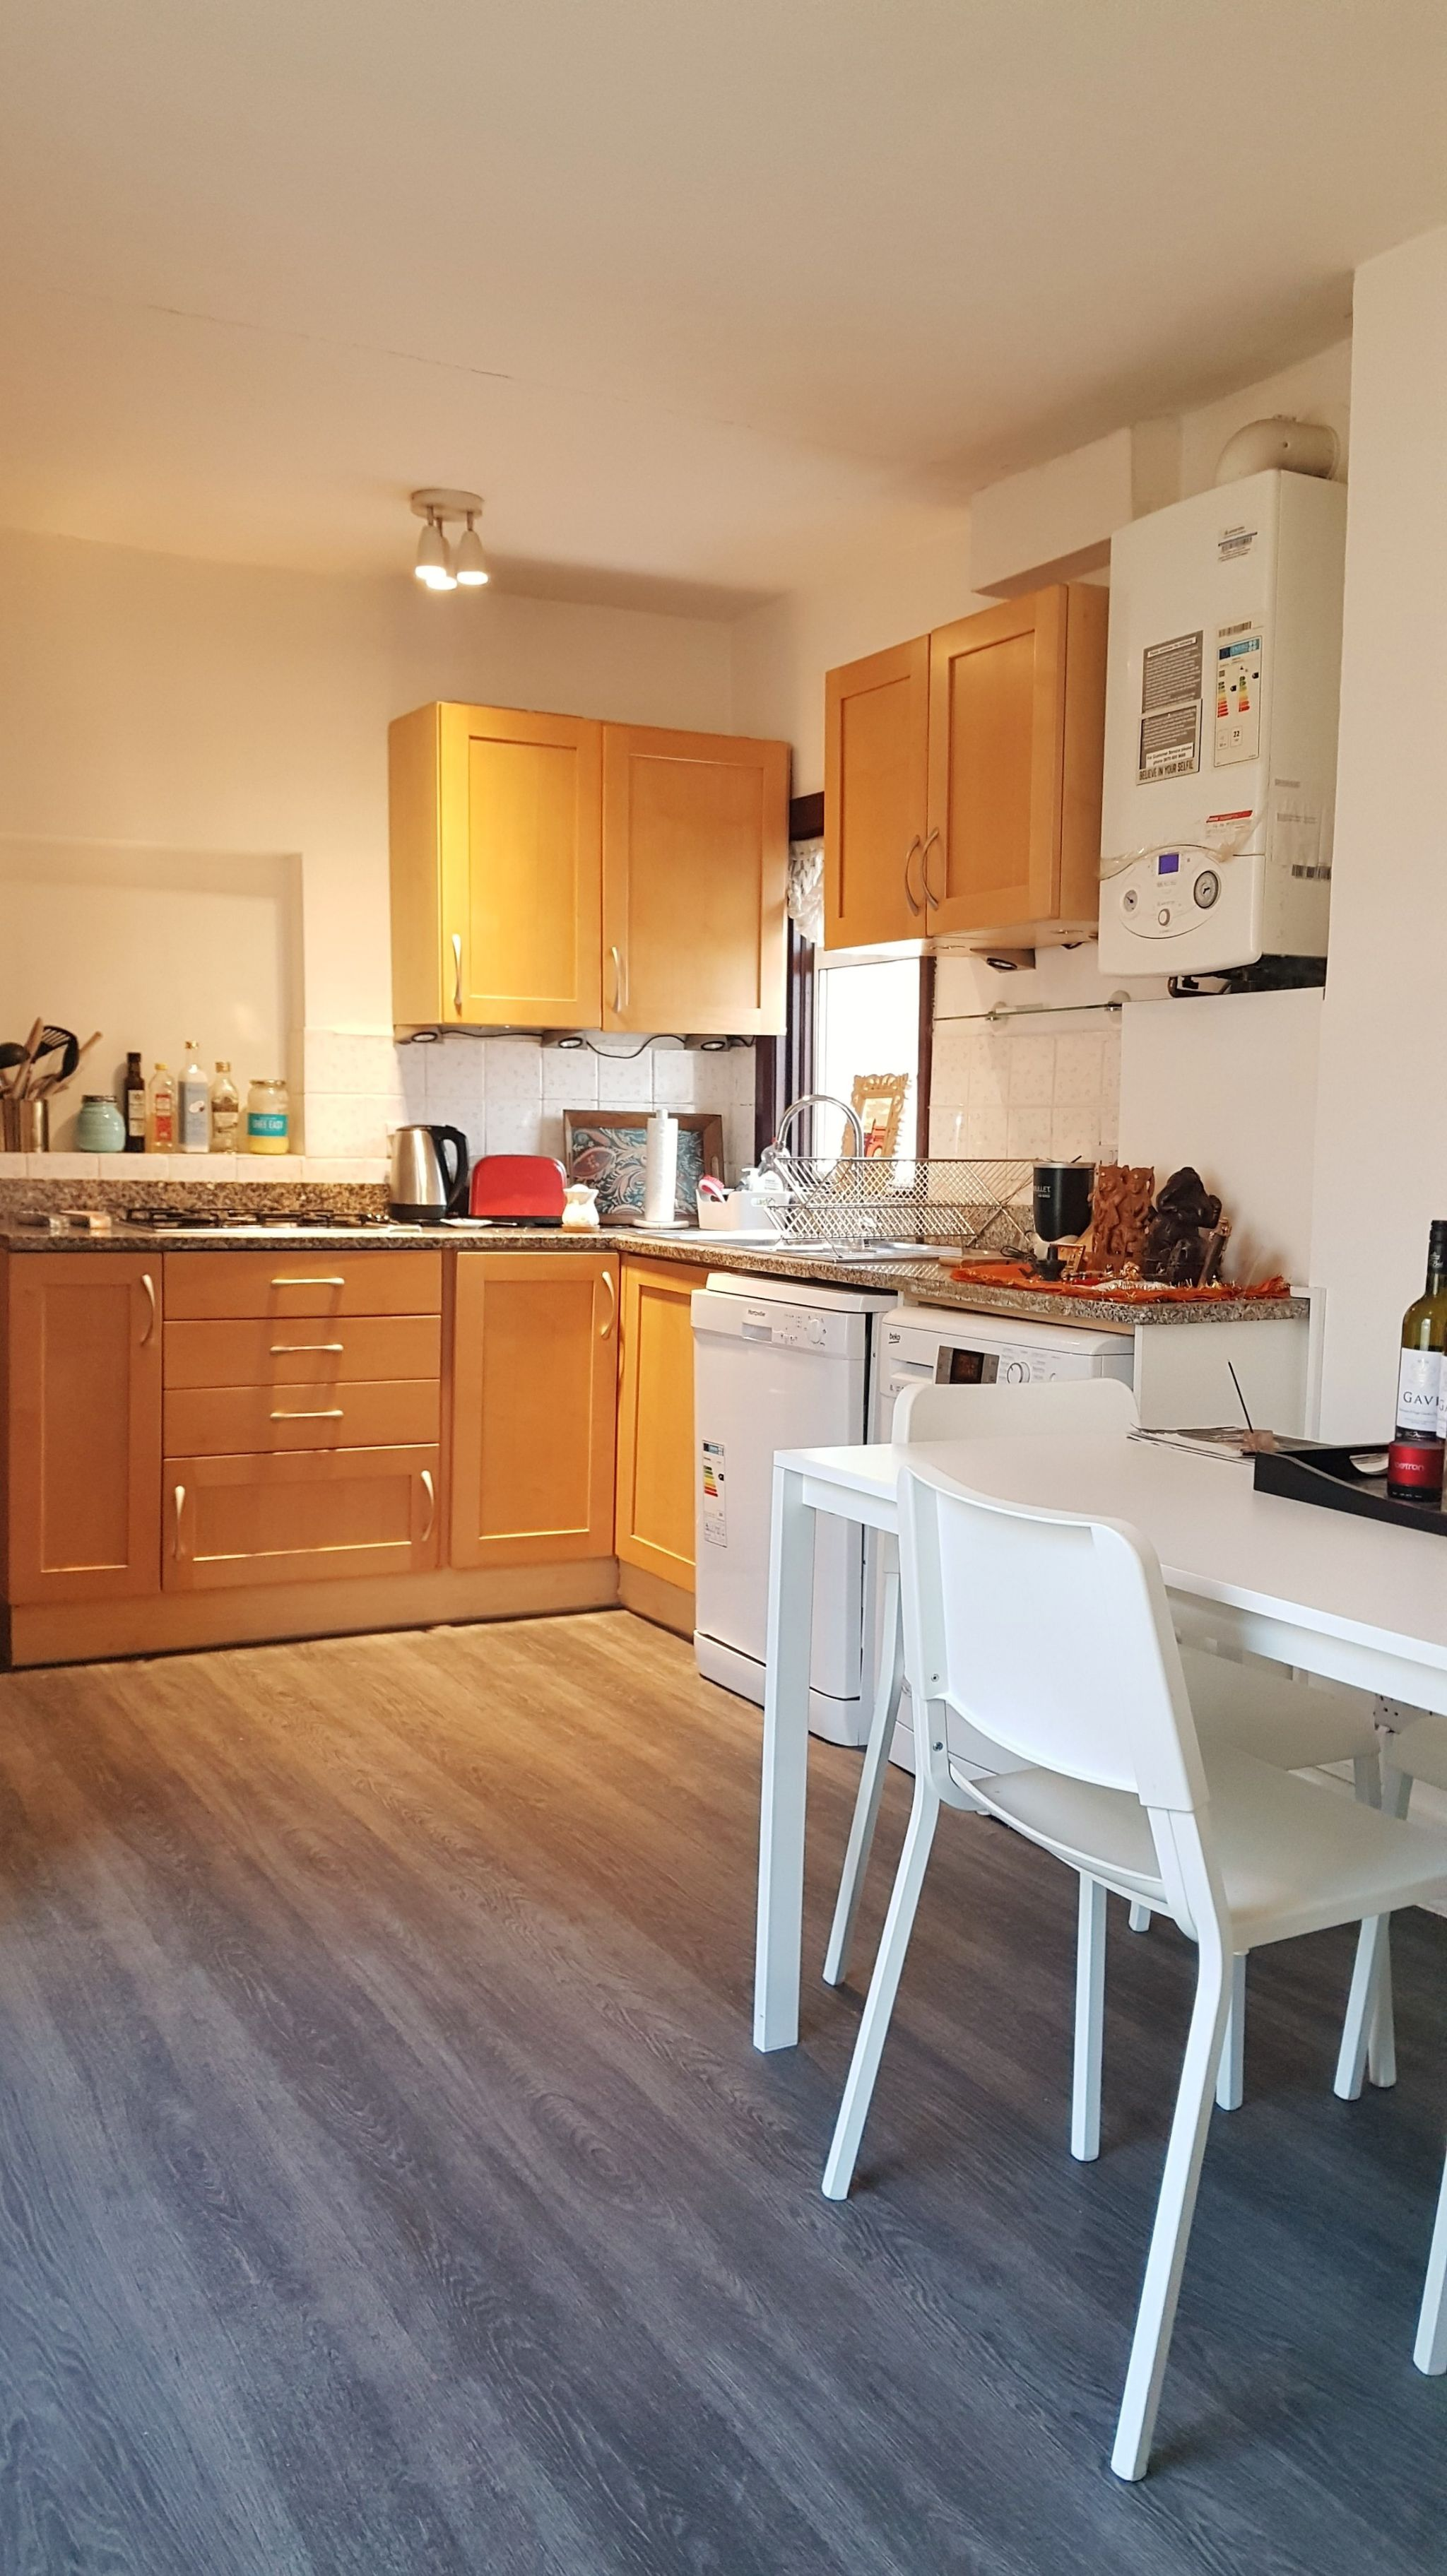 1 bedroom apartment flat/apartment Under Offer in London - Kitchen wood floors